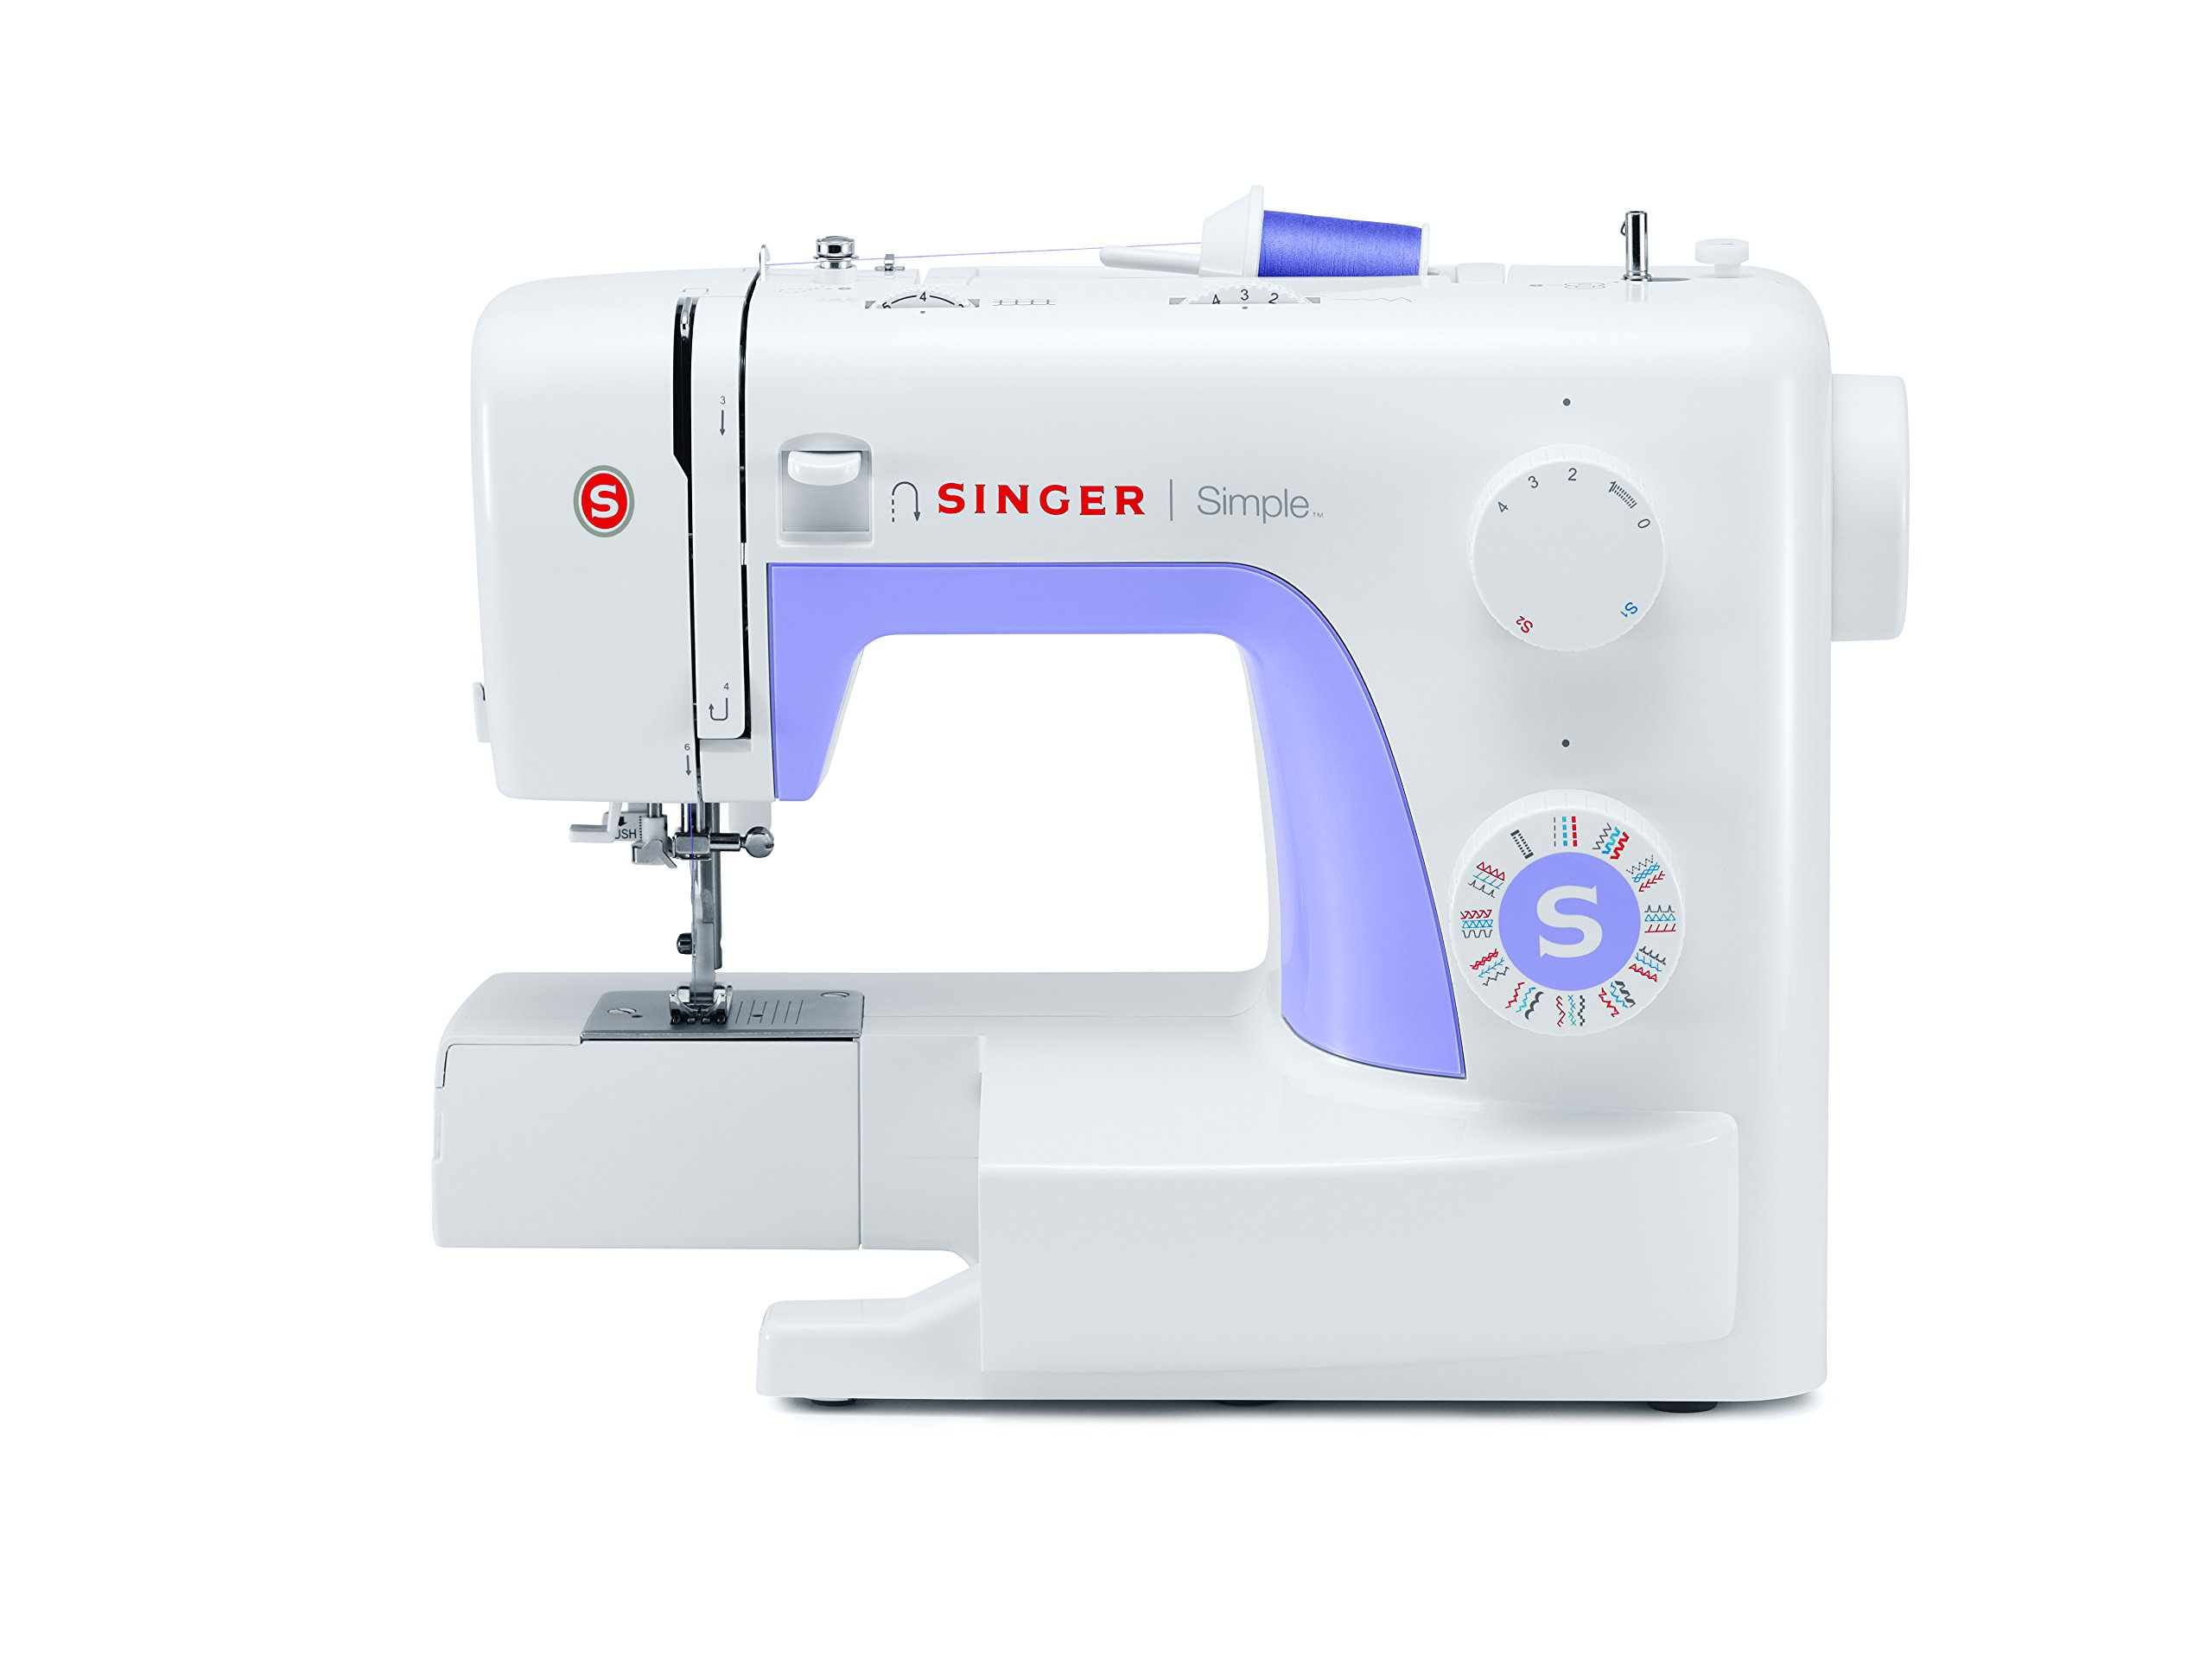 SINGER | Simple 3232 Portable Sewing Machine with 32 Built-In Stitches Including 19 Decorative Stitches, Automatic Needle Threader and Free Arm, Best Sewing Machine for Beginners by SINGER